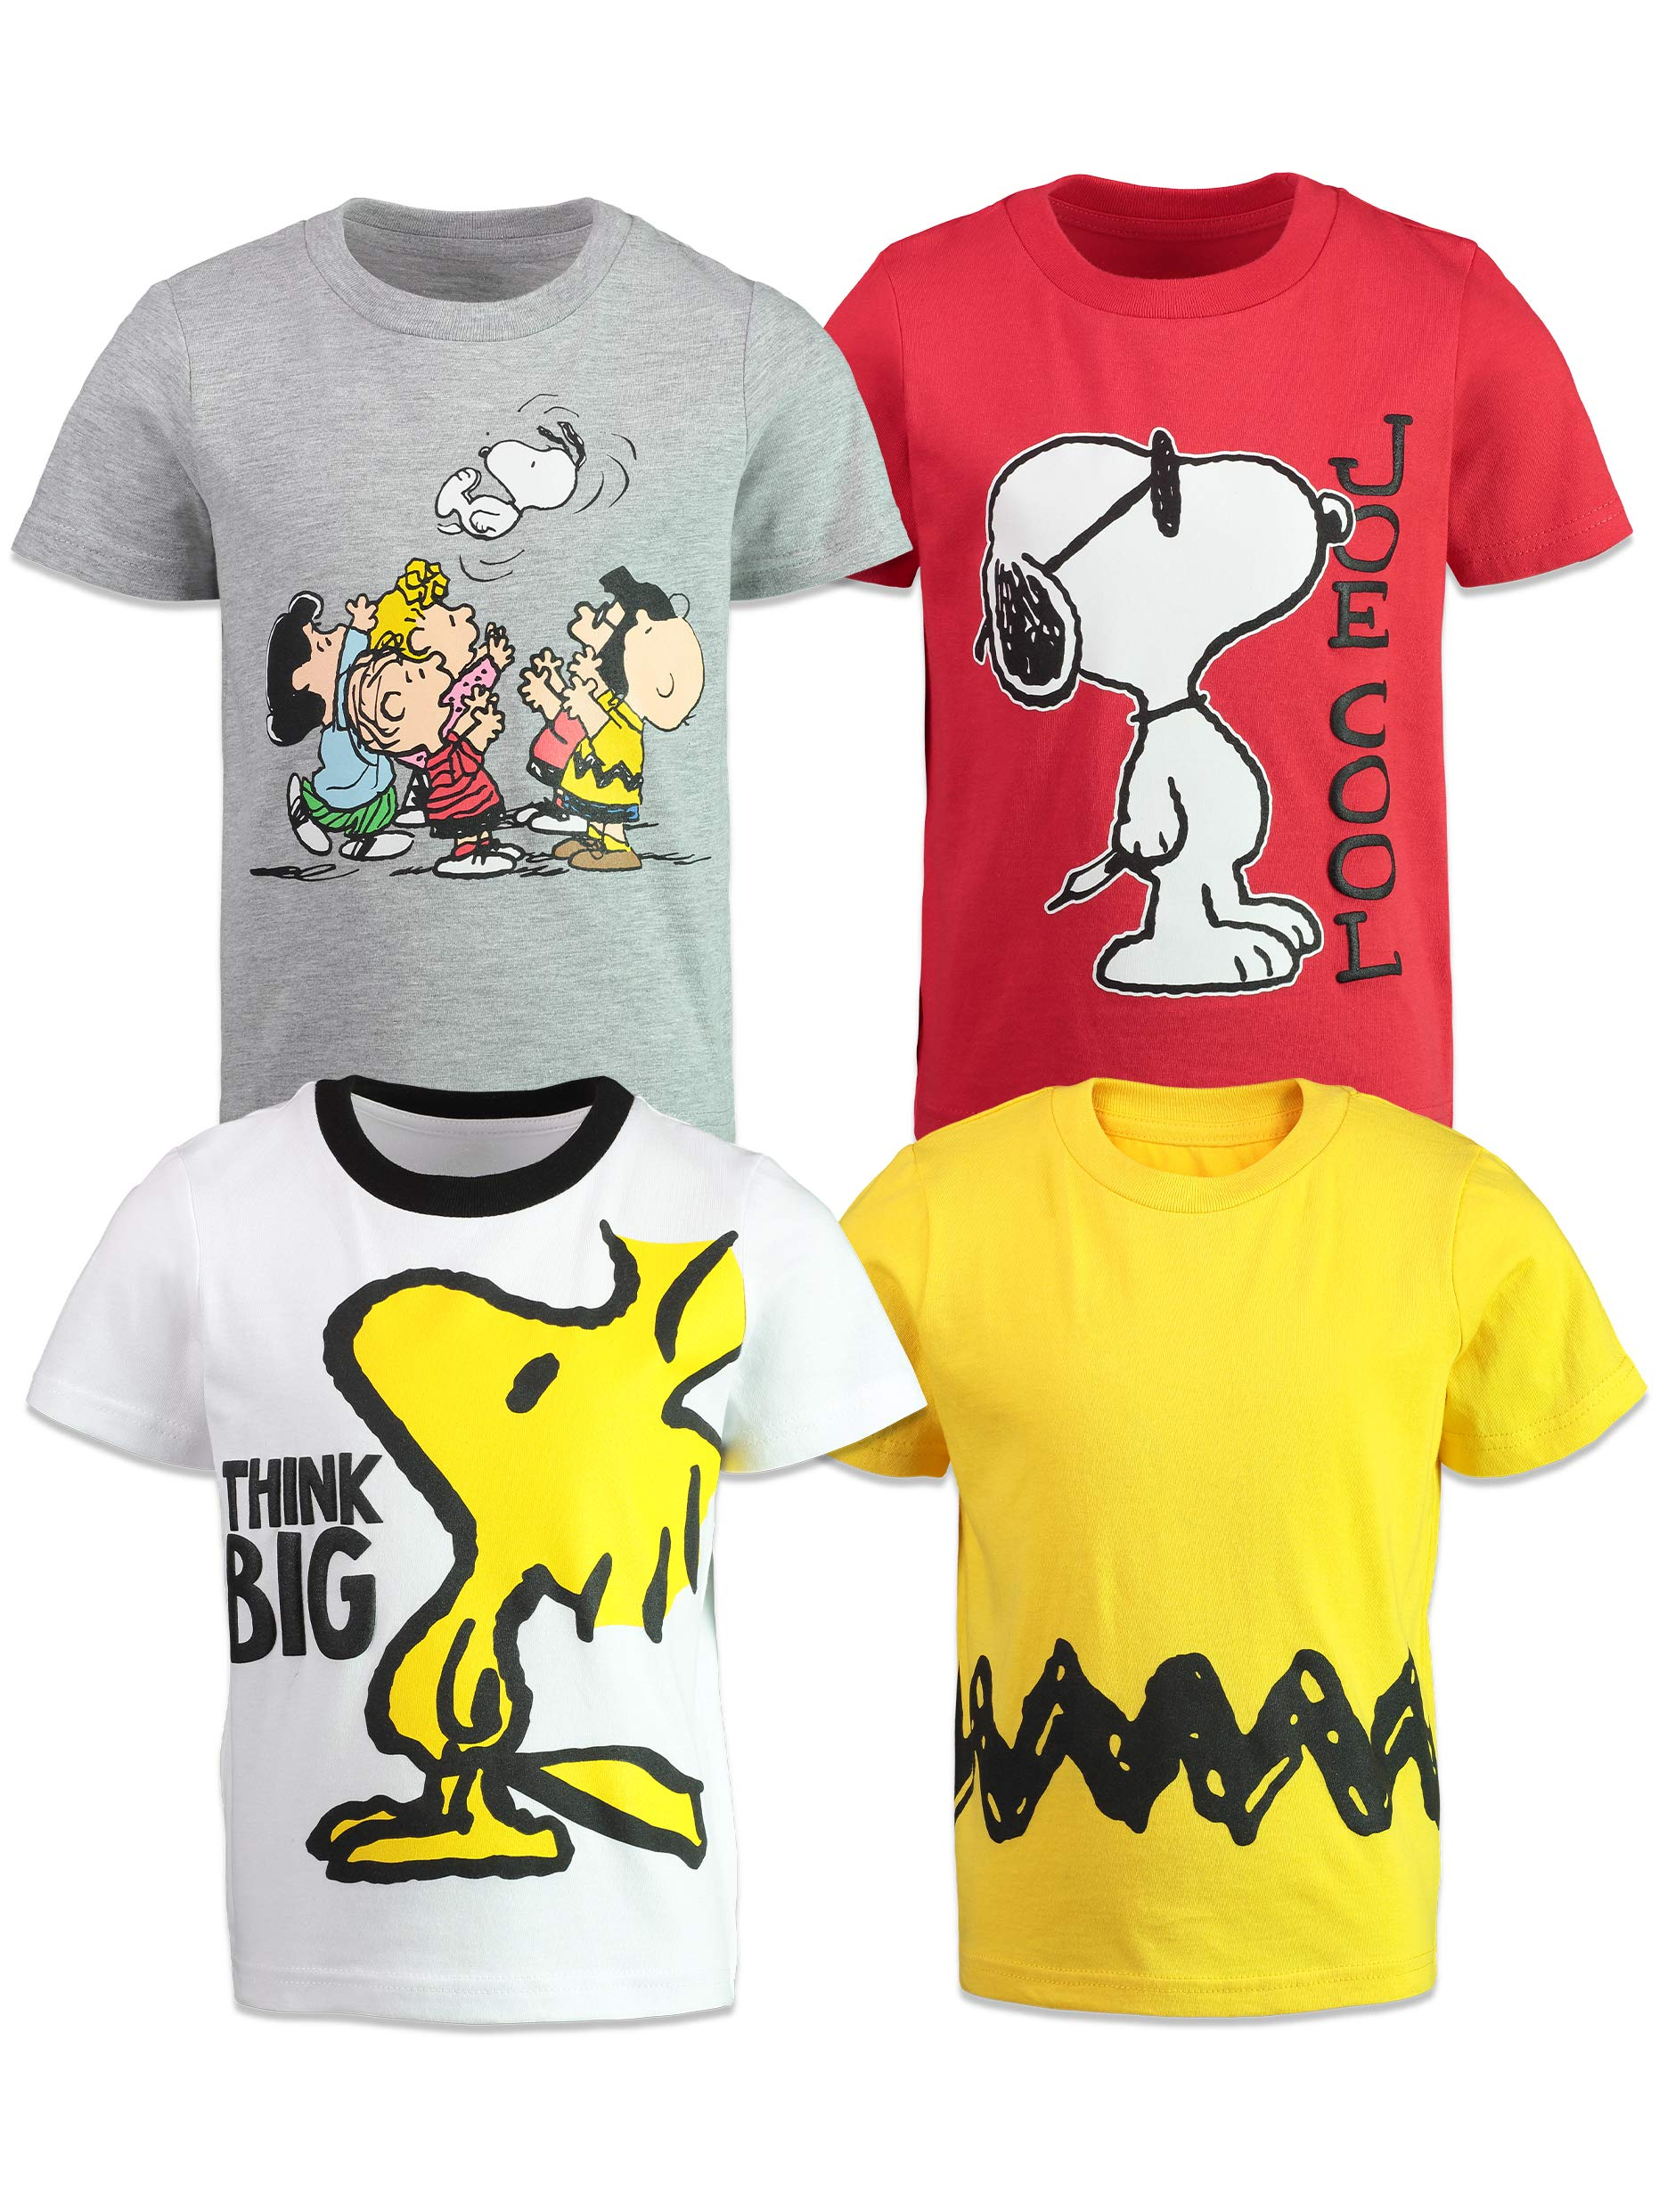 Peanuts Snoopy Charlie Brown Woodstock Baby Boys T-Shirts 4 Pack 18 Months by Peanuts